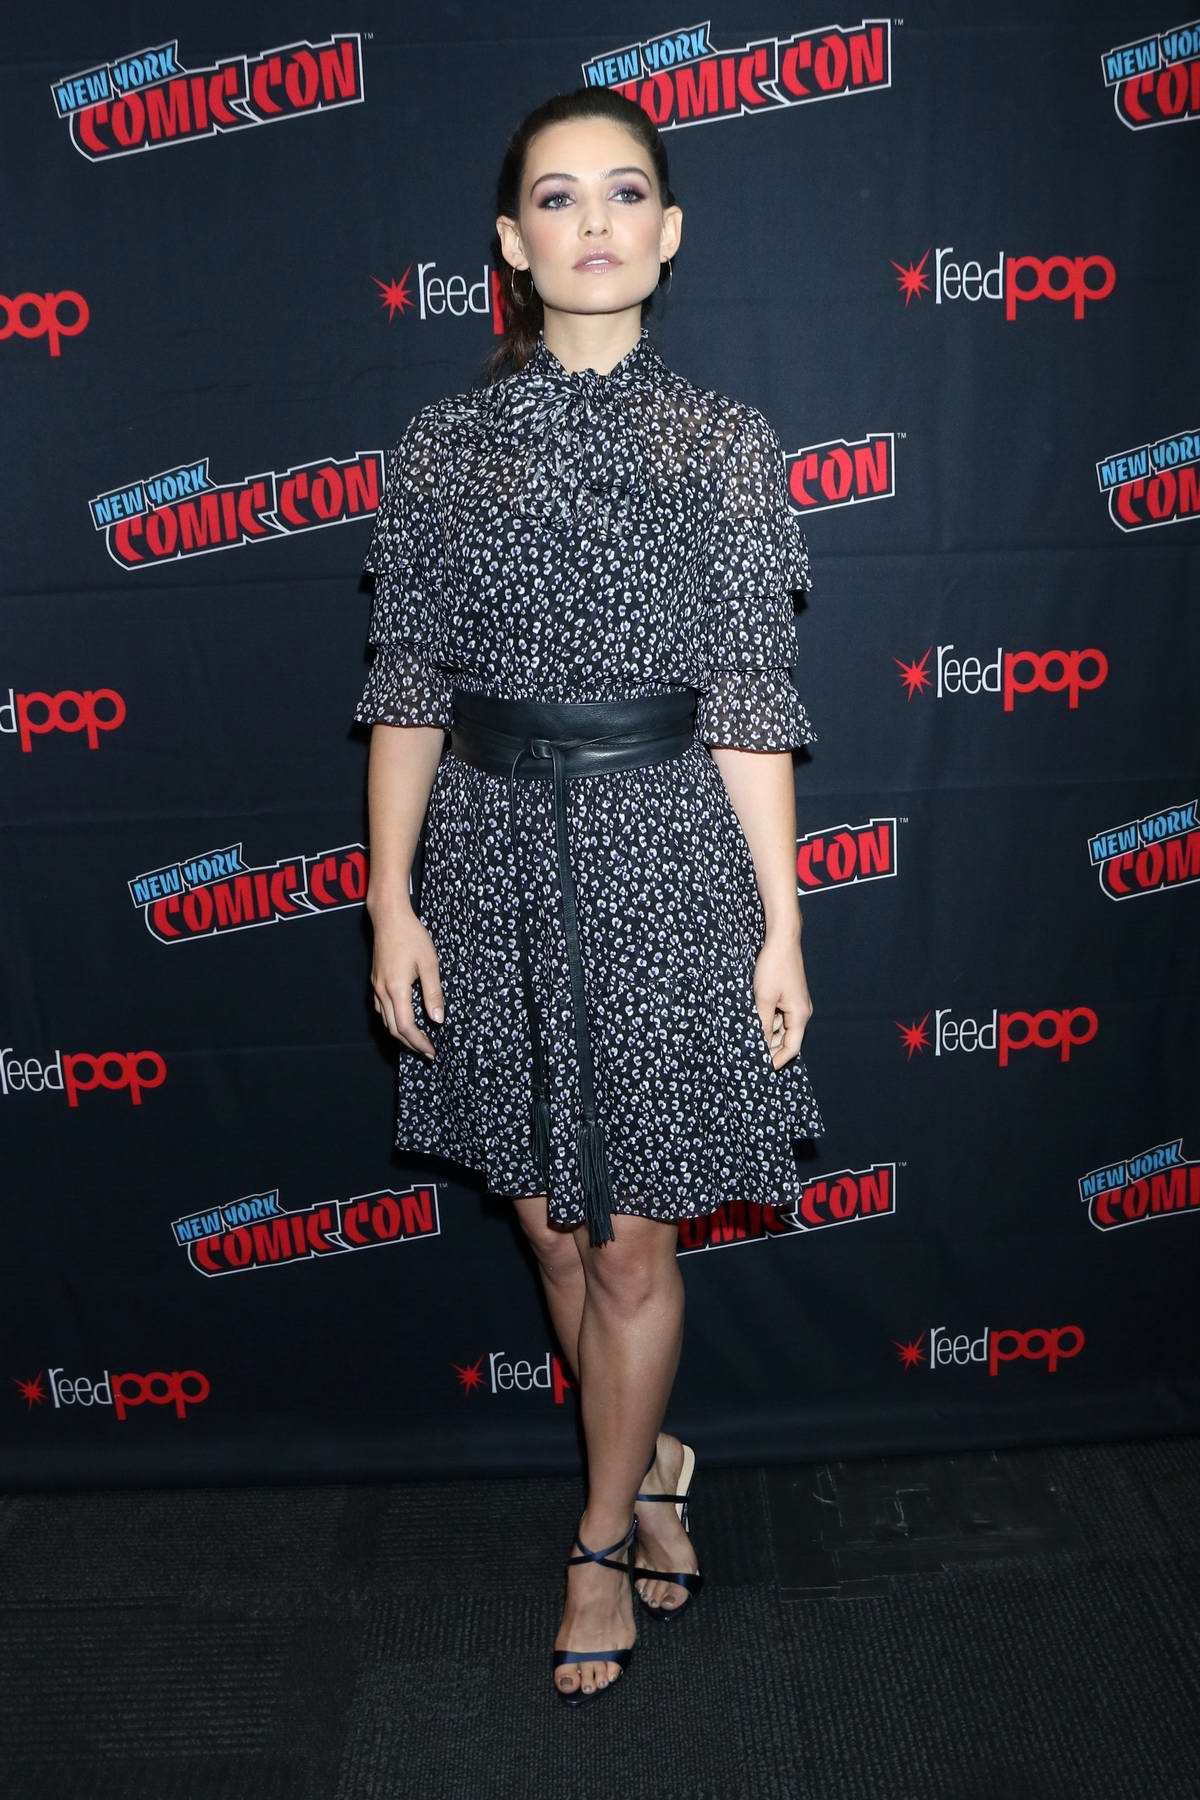 Danielle Campbell attends the press room for 'Tell Me a Story' during New York Comic Con 2019 in New York City